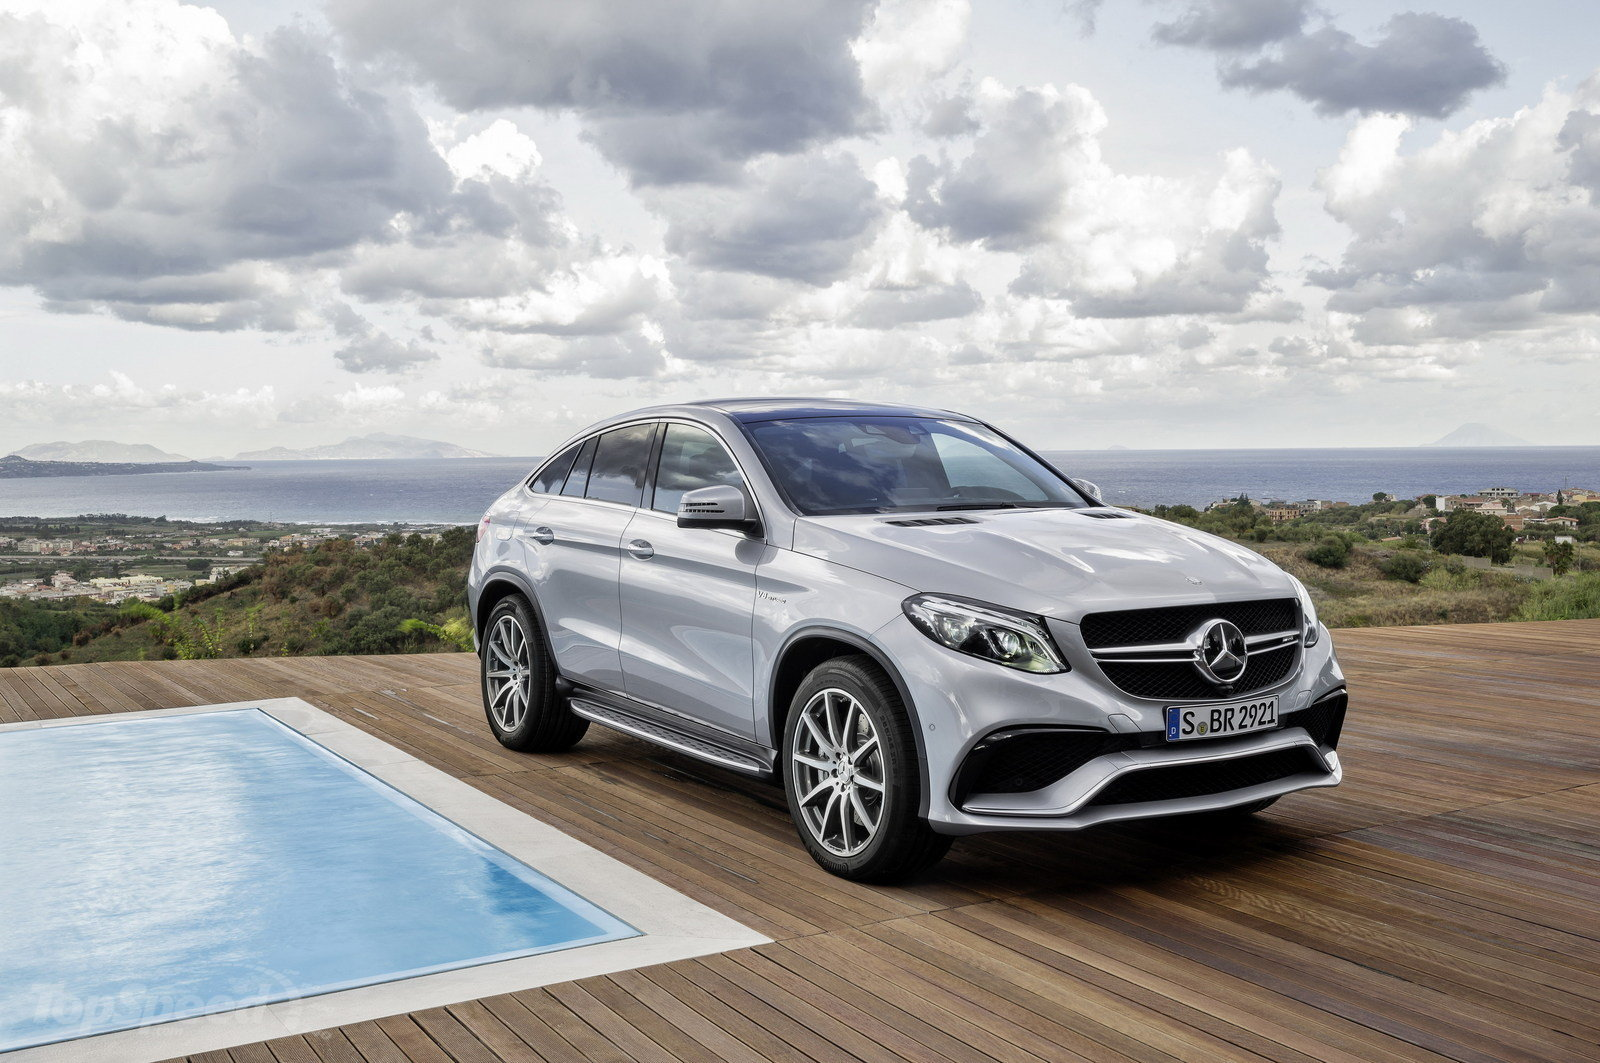 2018 Mercedes Benz GLE63 AMG Coupe photo - 5